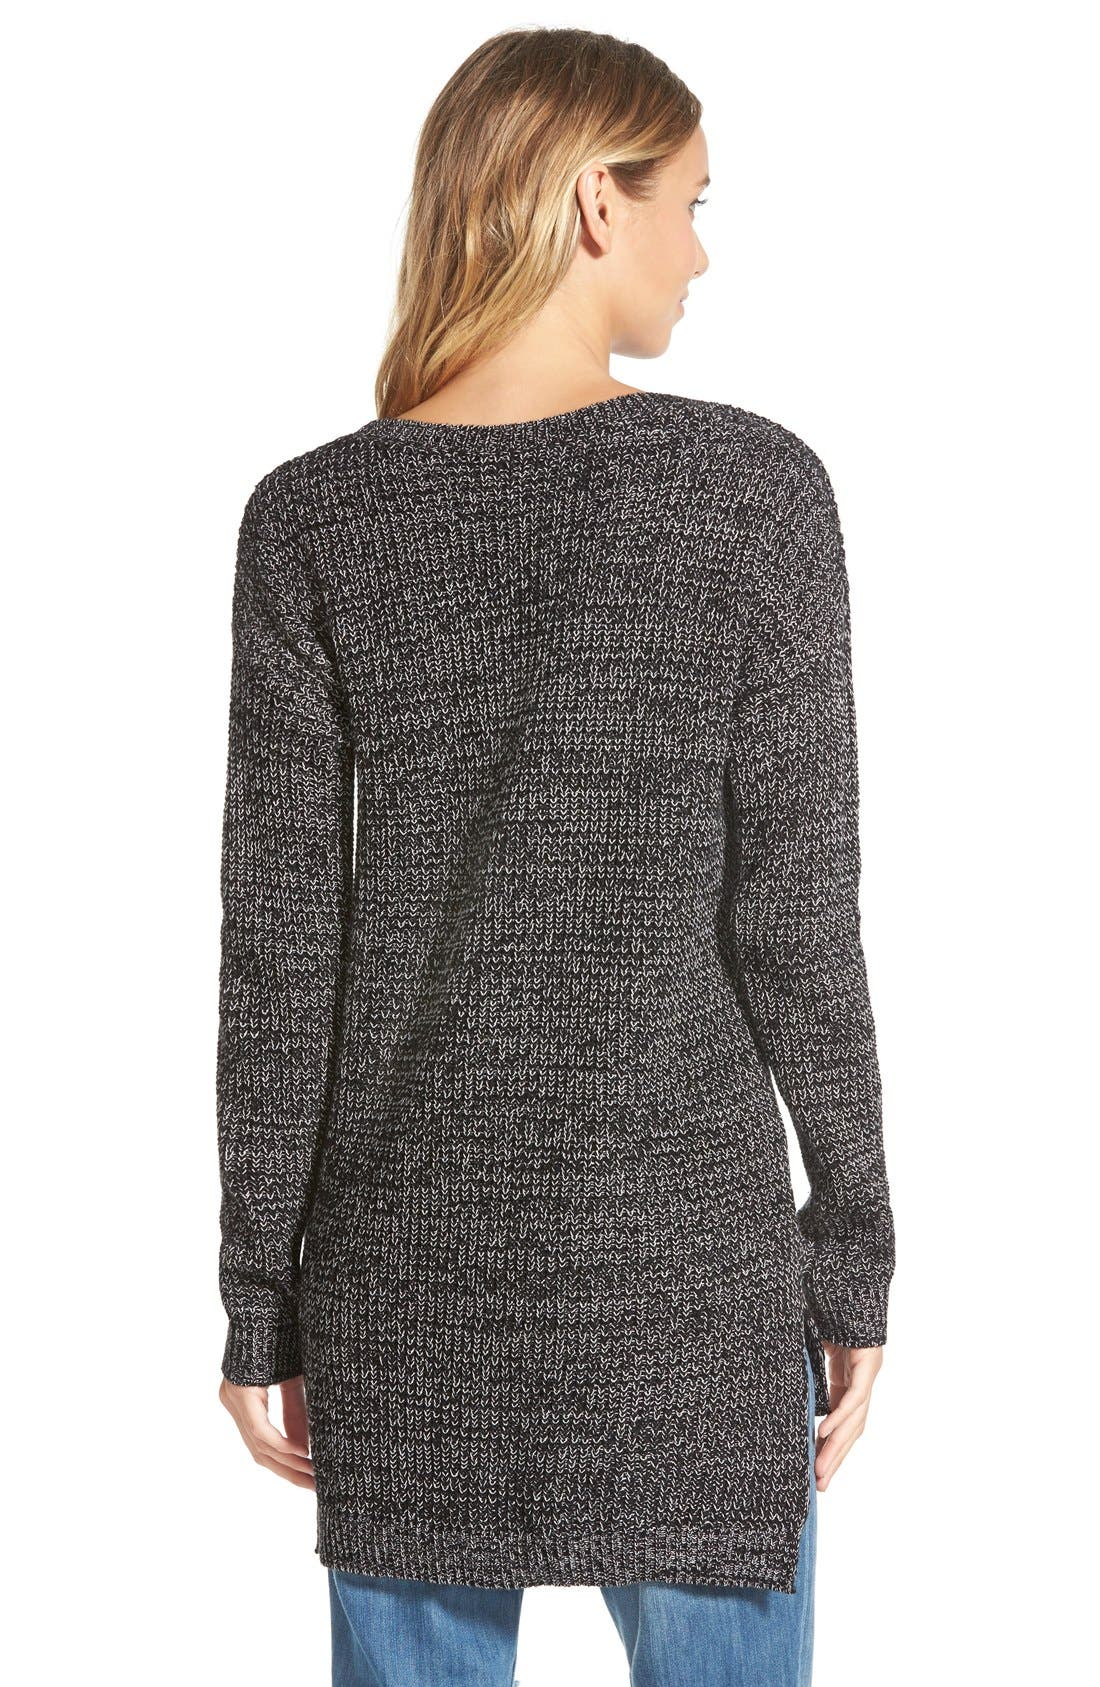 Textured Knit Pullover,                             Alternate thumbnail 3, color,                             001